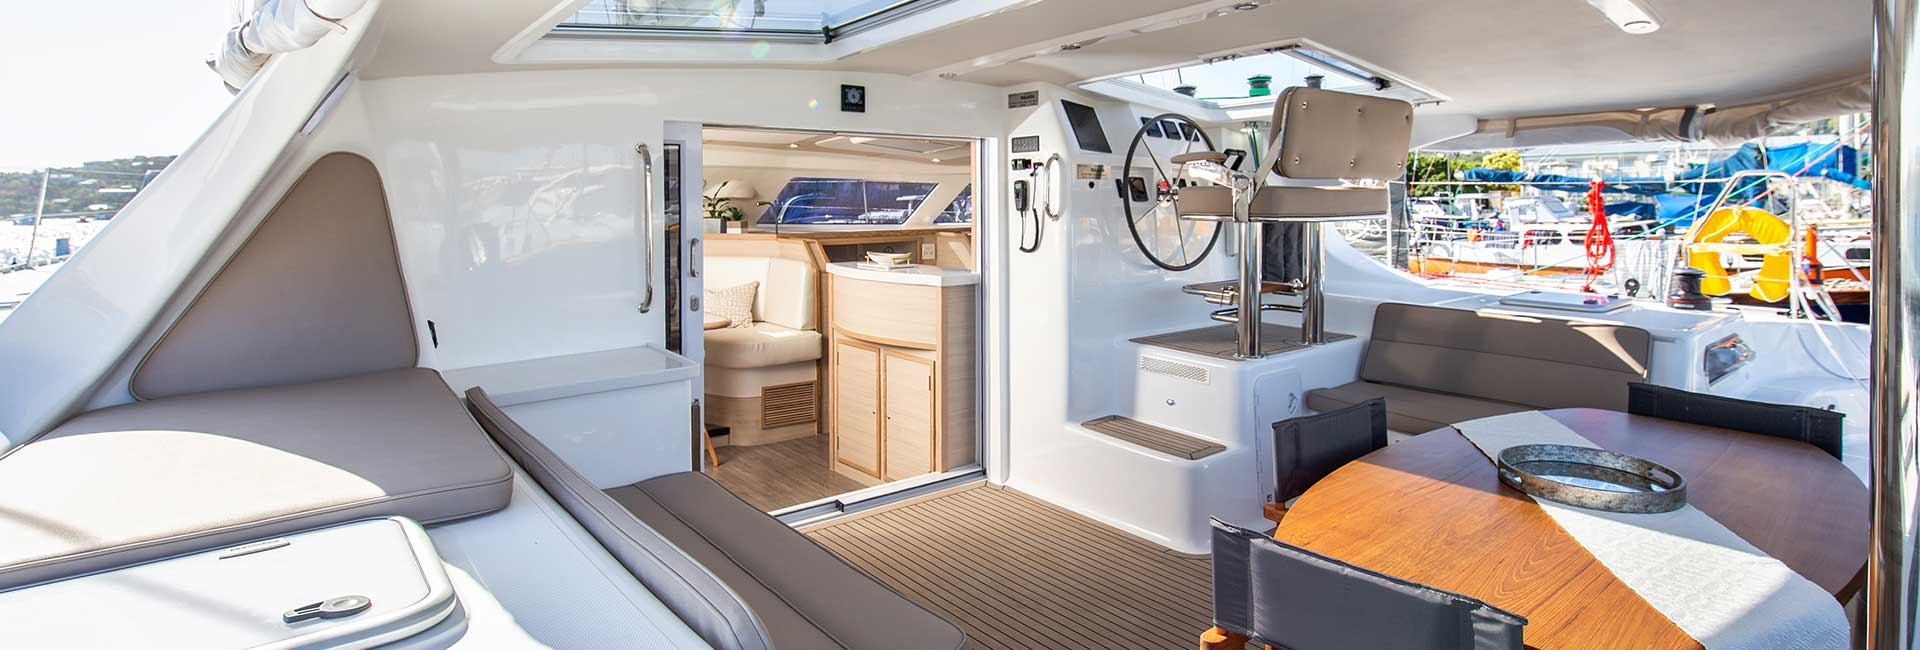 outside area of yacht